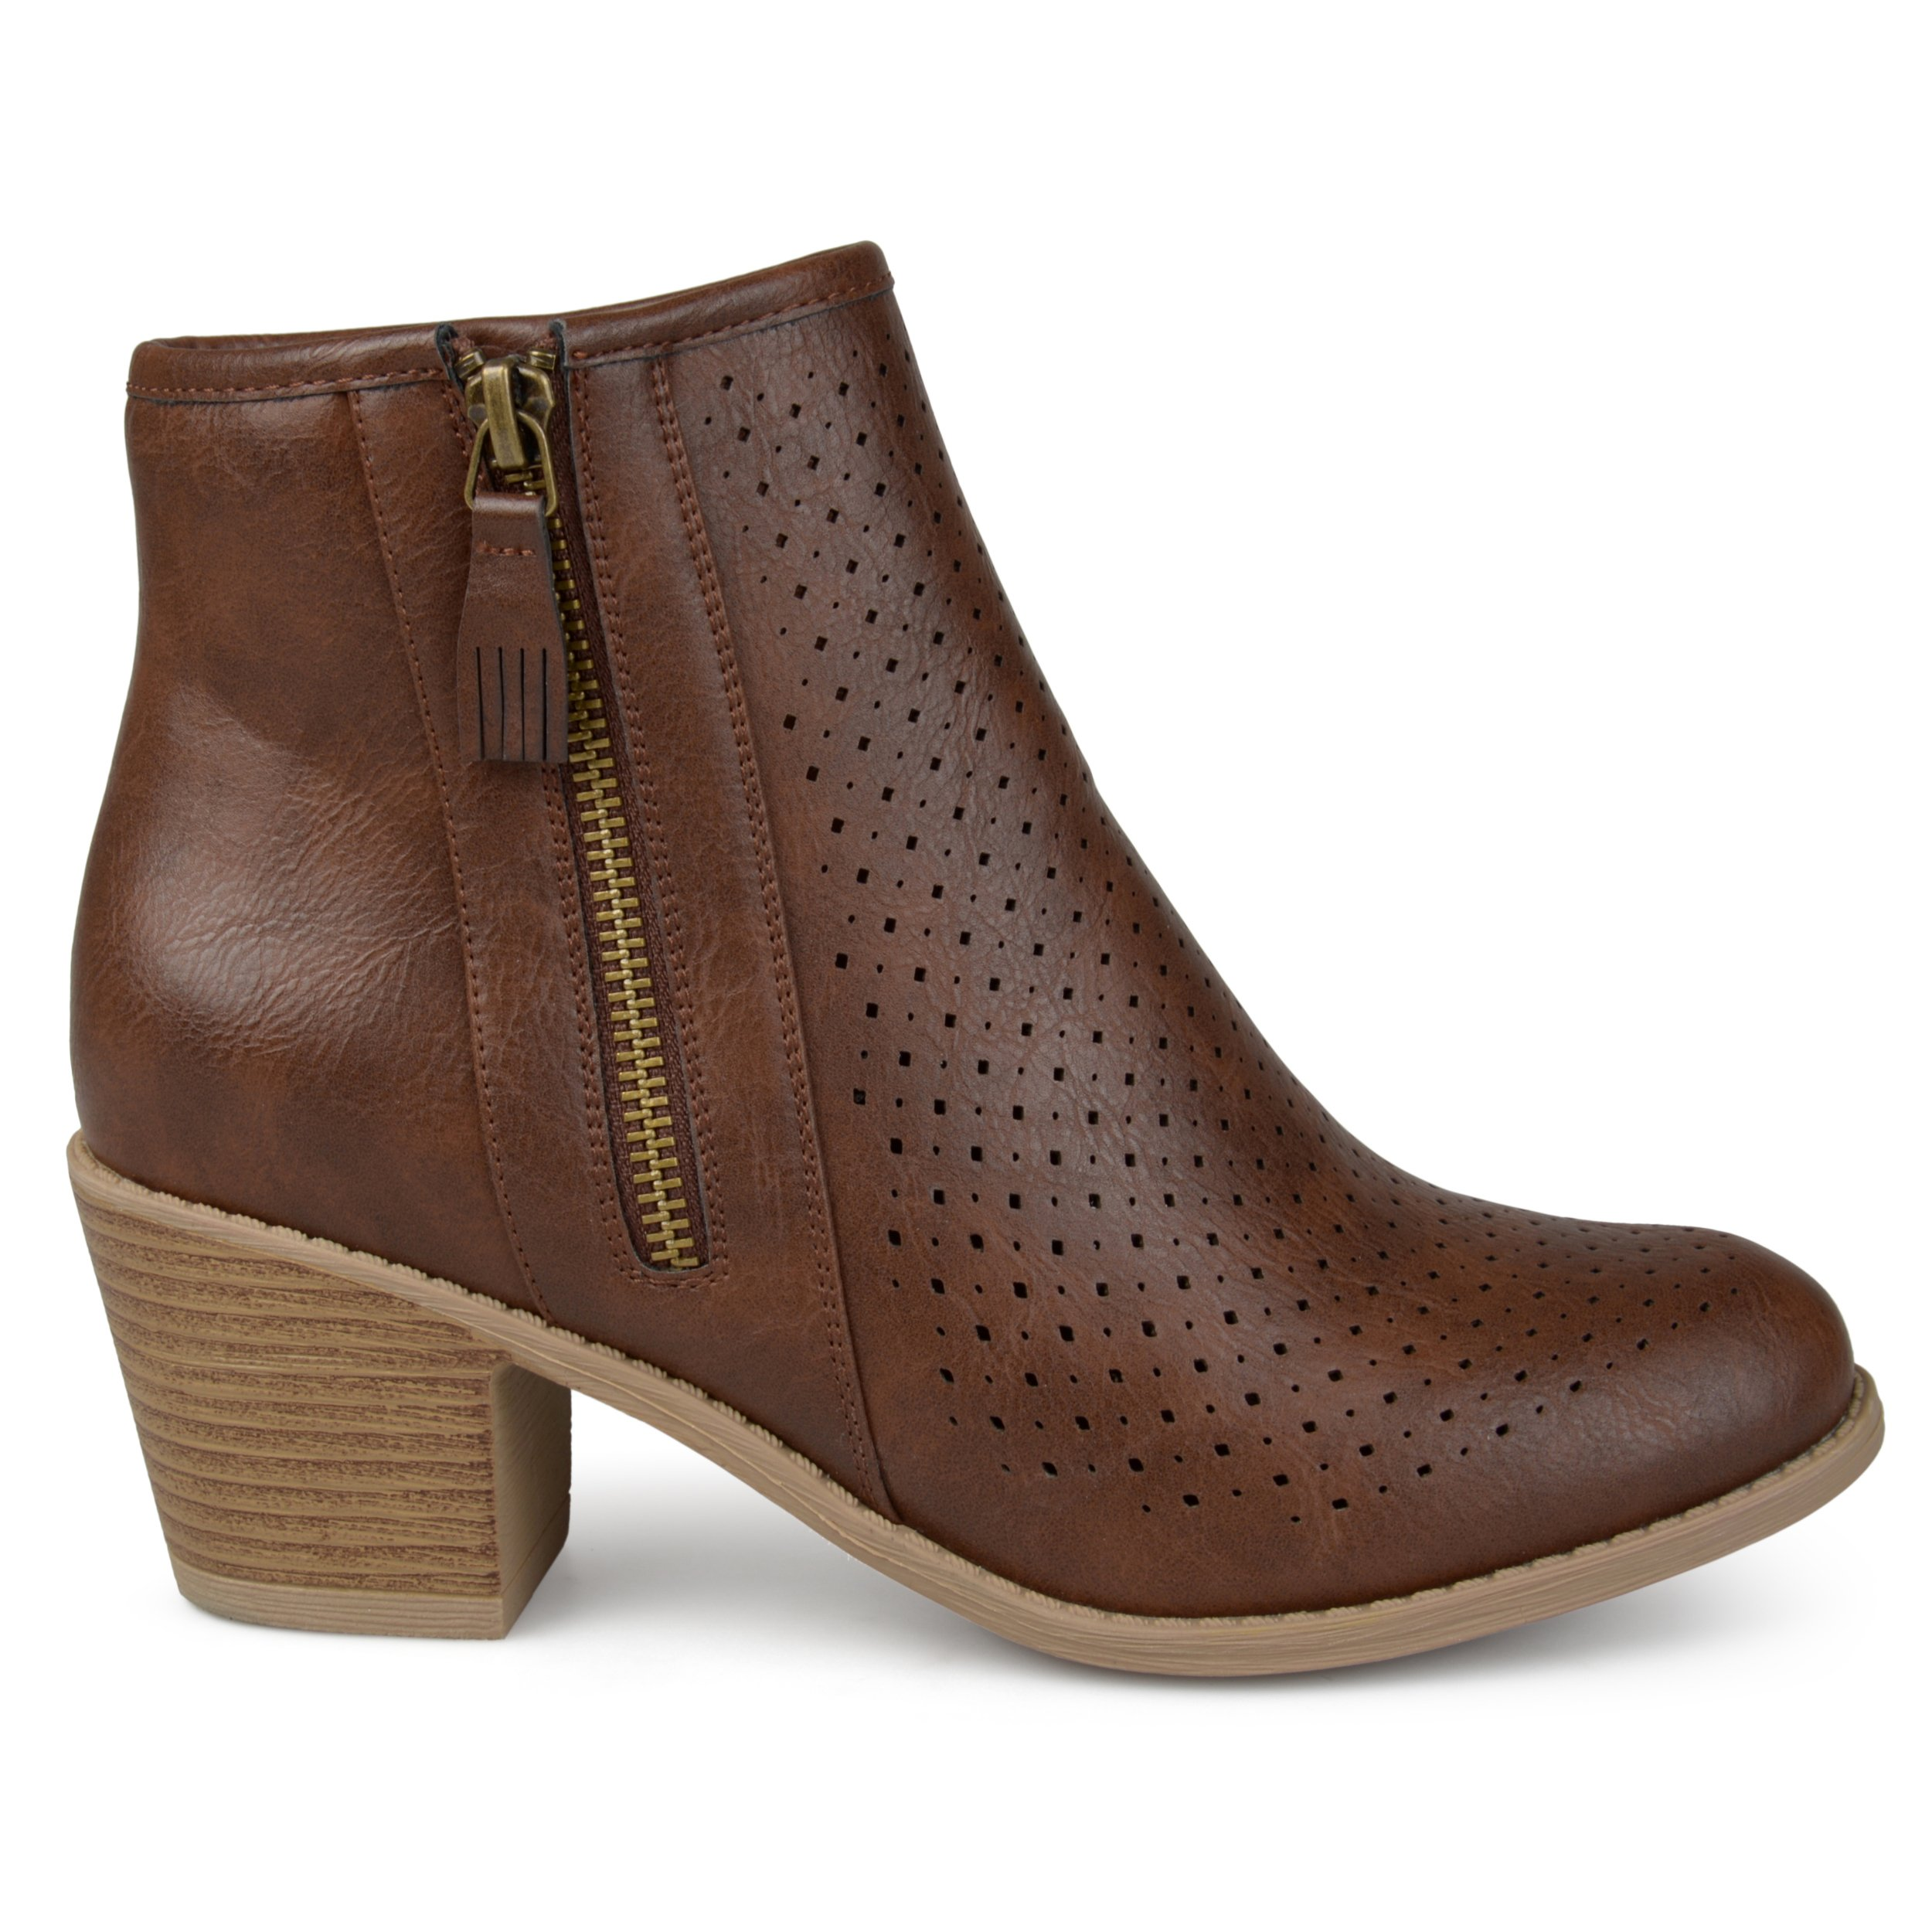 Brinley Co. Womens Malak Faux Leather Faux Wood Comfort-Sole Stacked Heel Laser-Cut Booties Brown, 7.5 Regular US